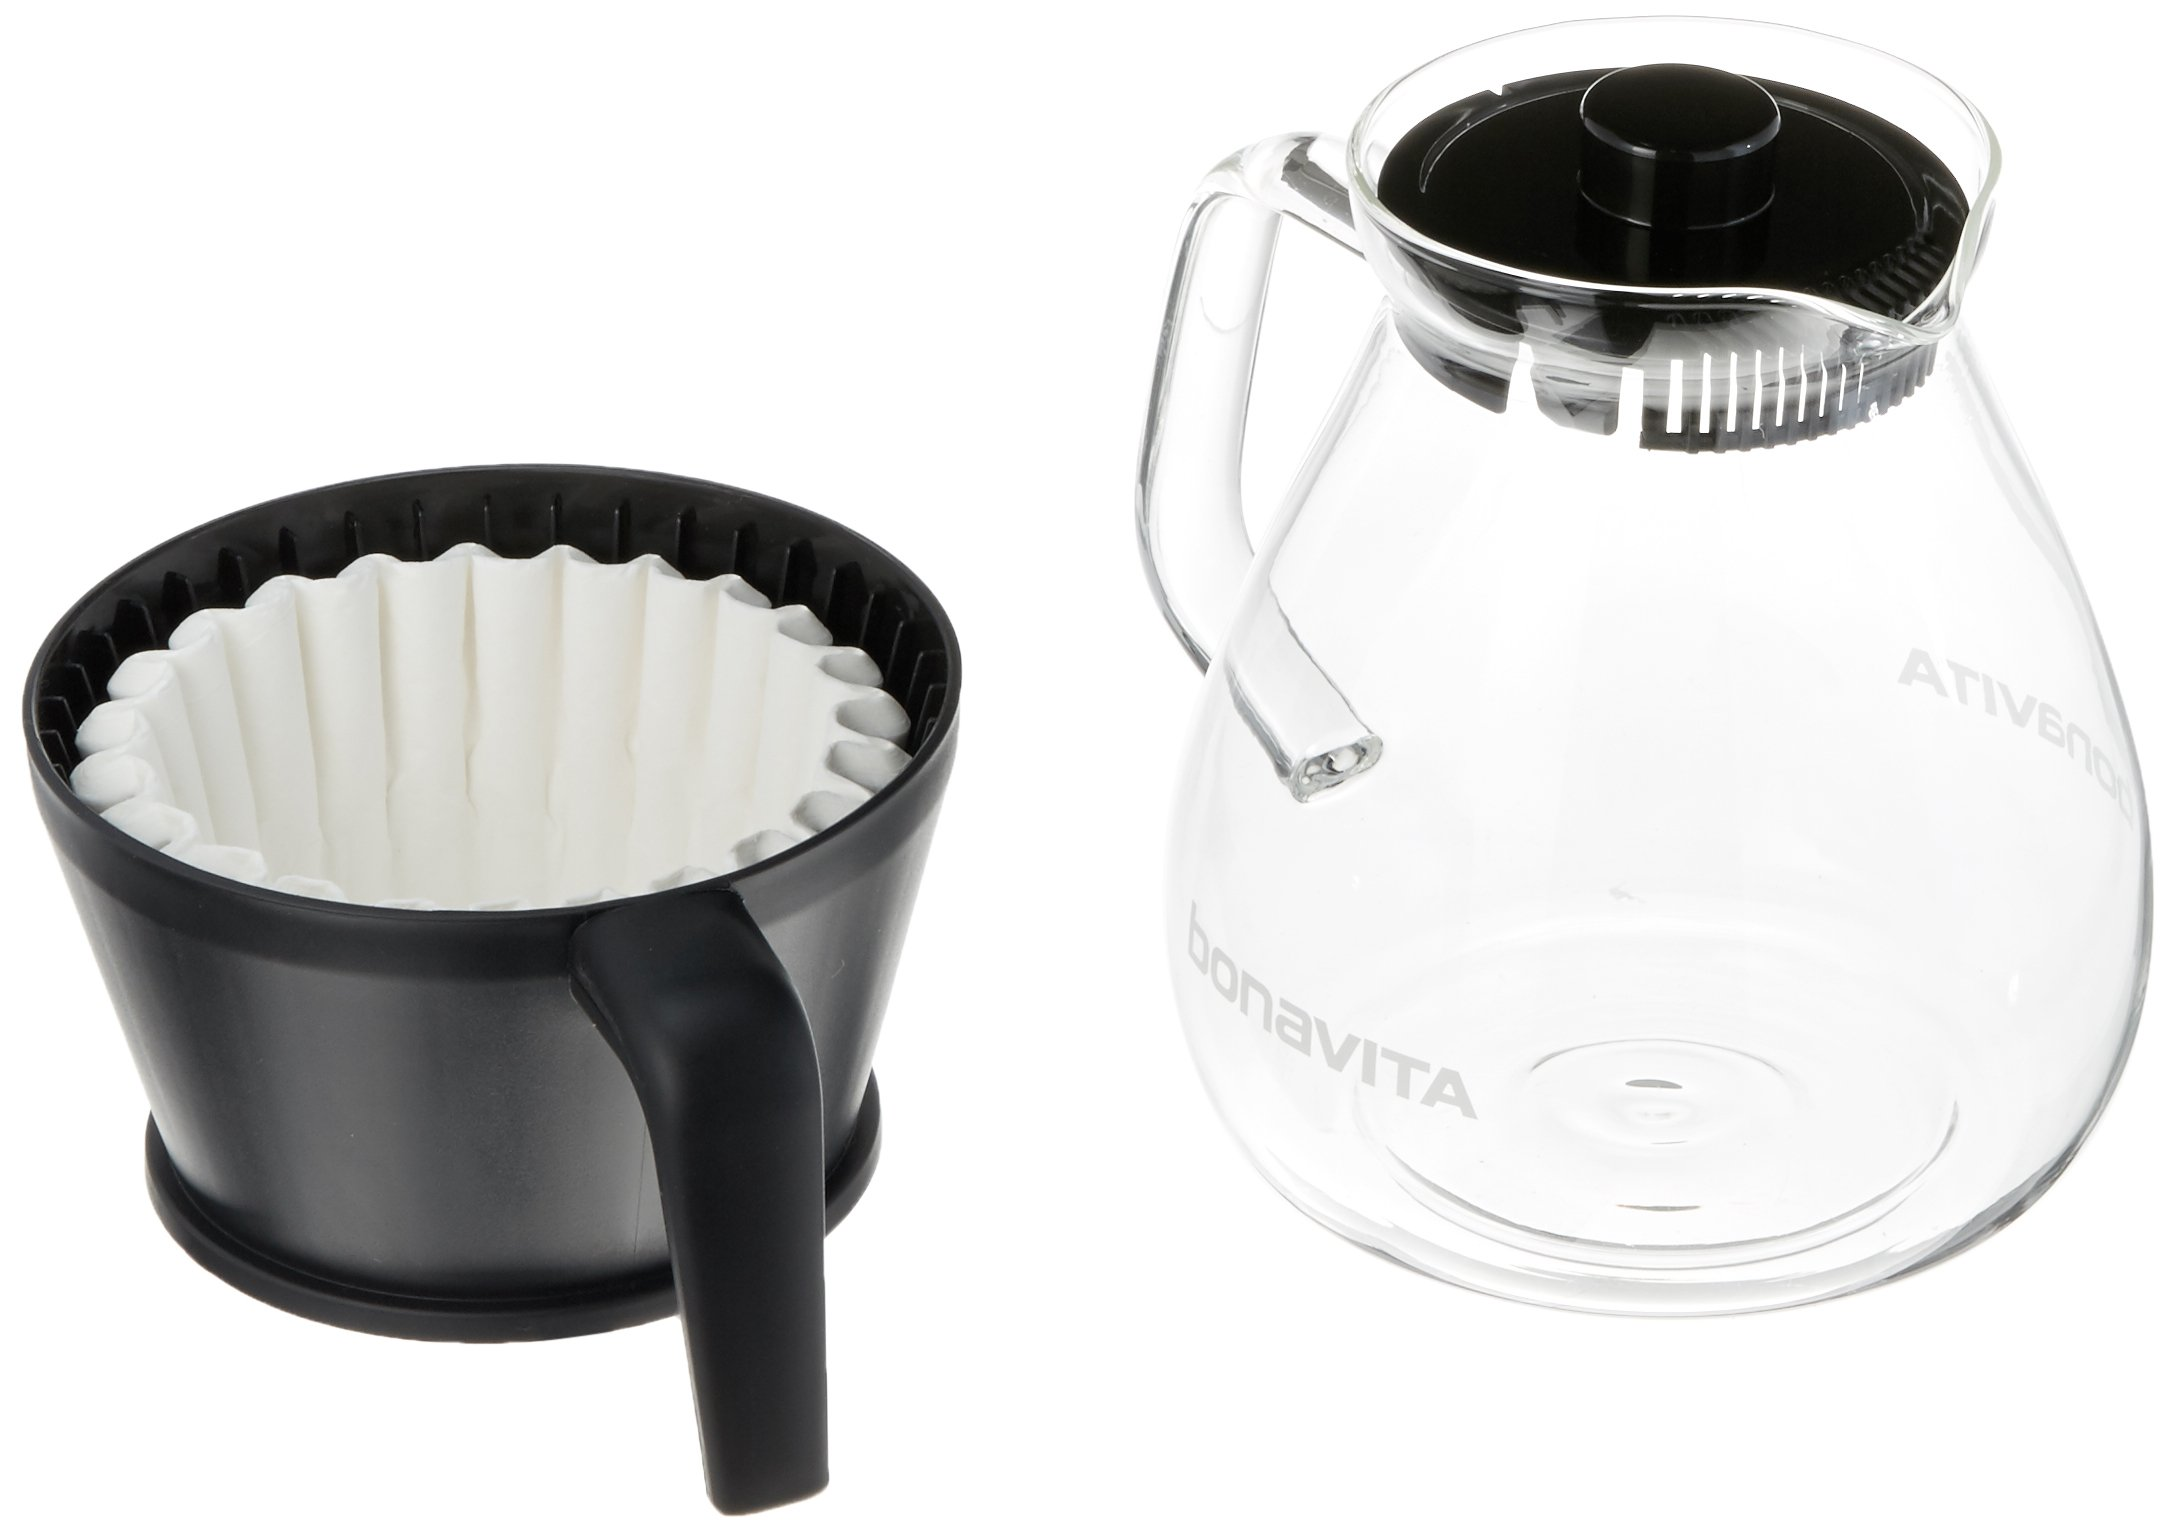 Bonavita BV1901GW 8-Cup One-Touch Coffee Maker Featuring Glass Carafe and Warming Plate by Bonavita (Image #2)